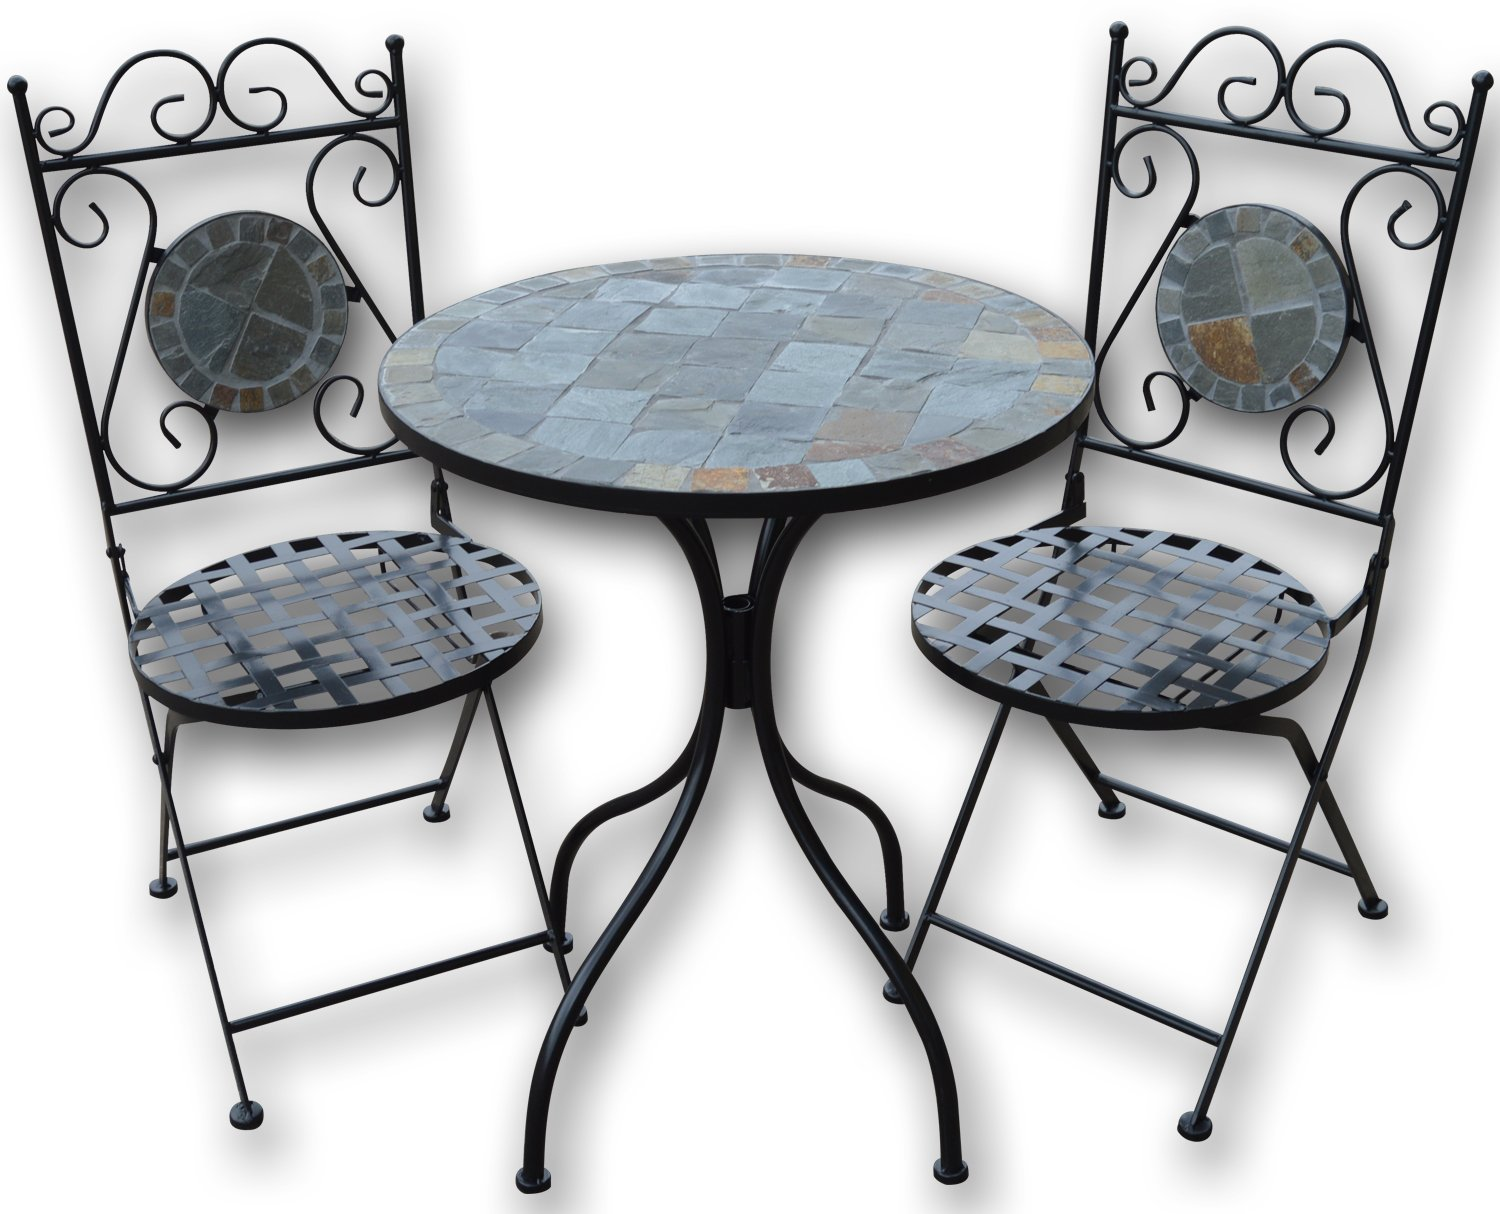 Woodside Mosaic Garden Table And Folding Chair Set Outdoor Dining